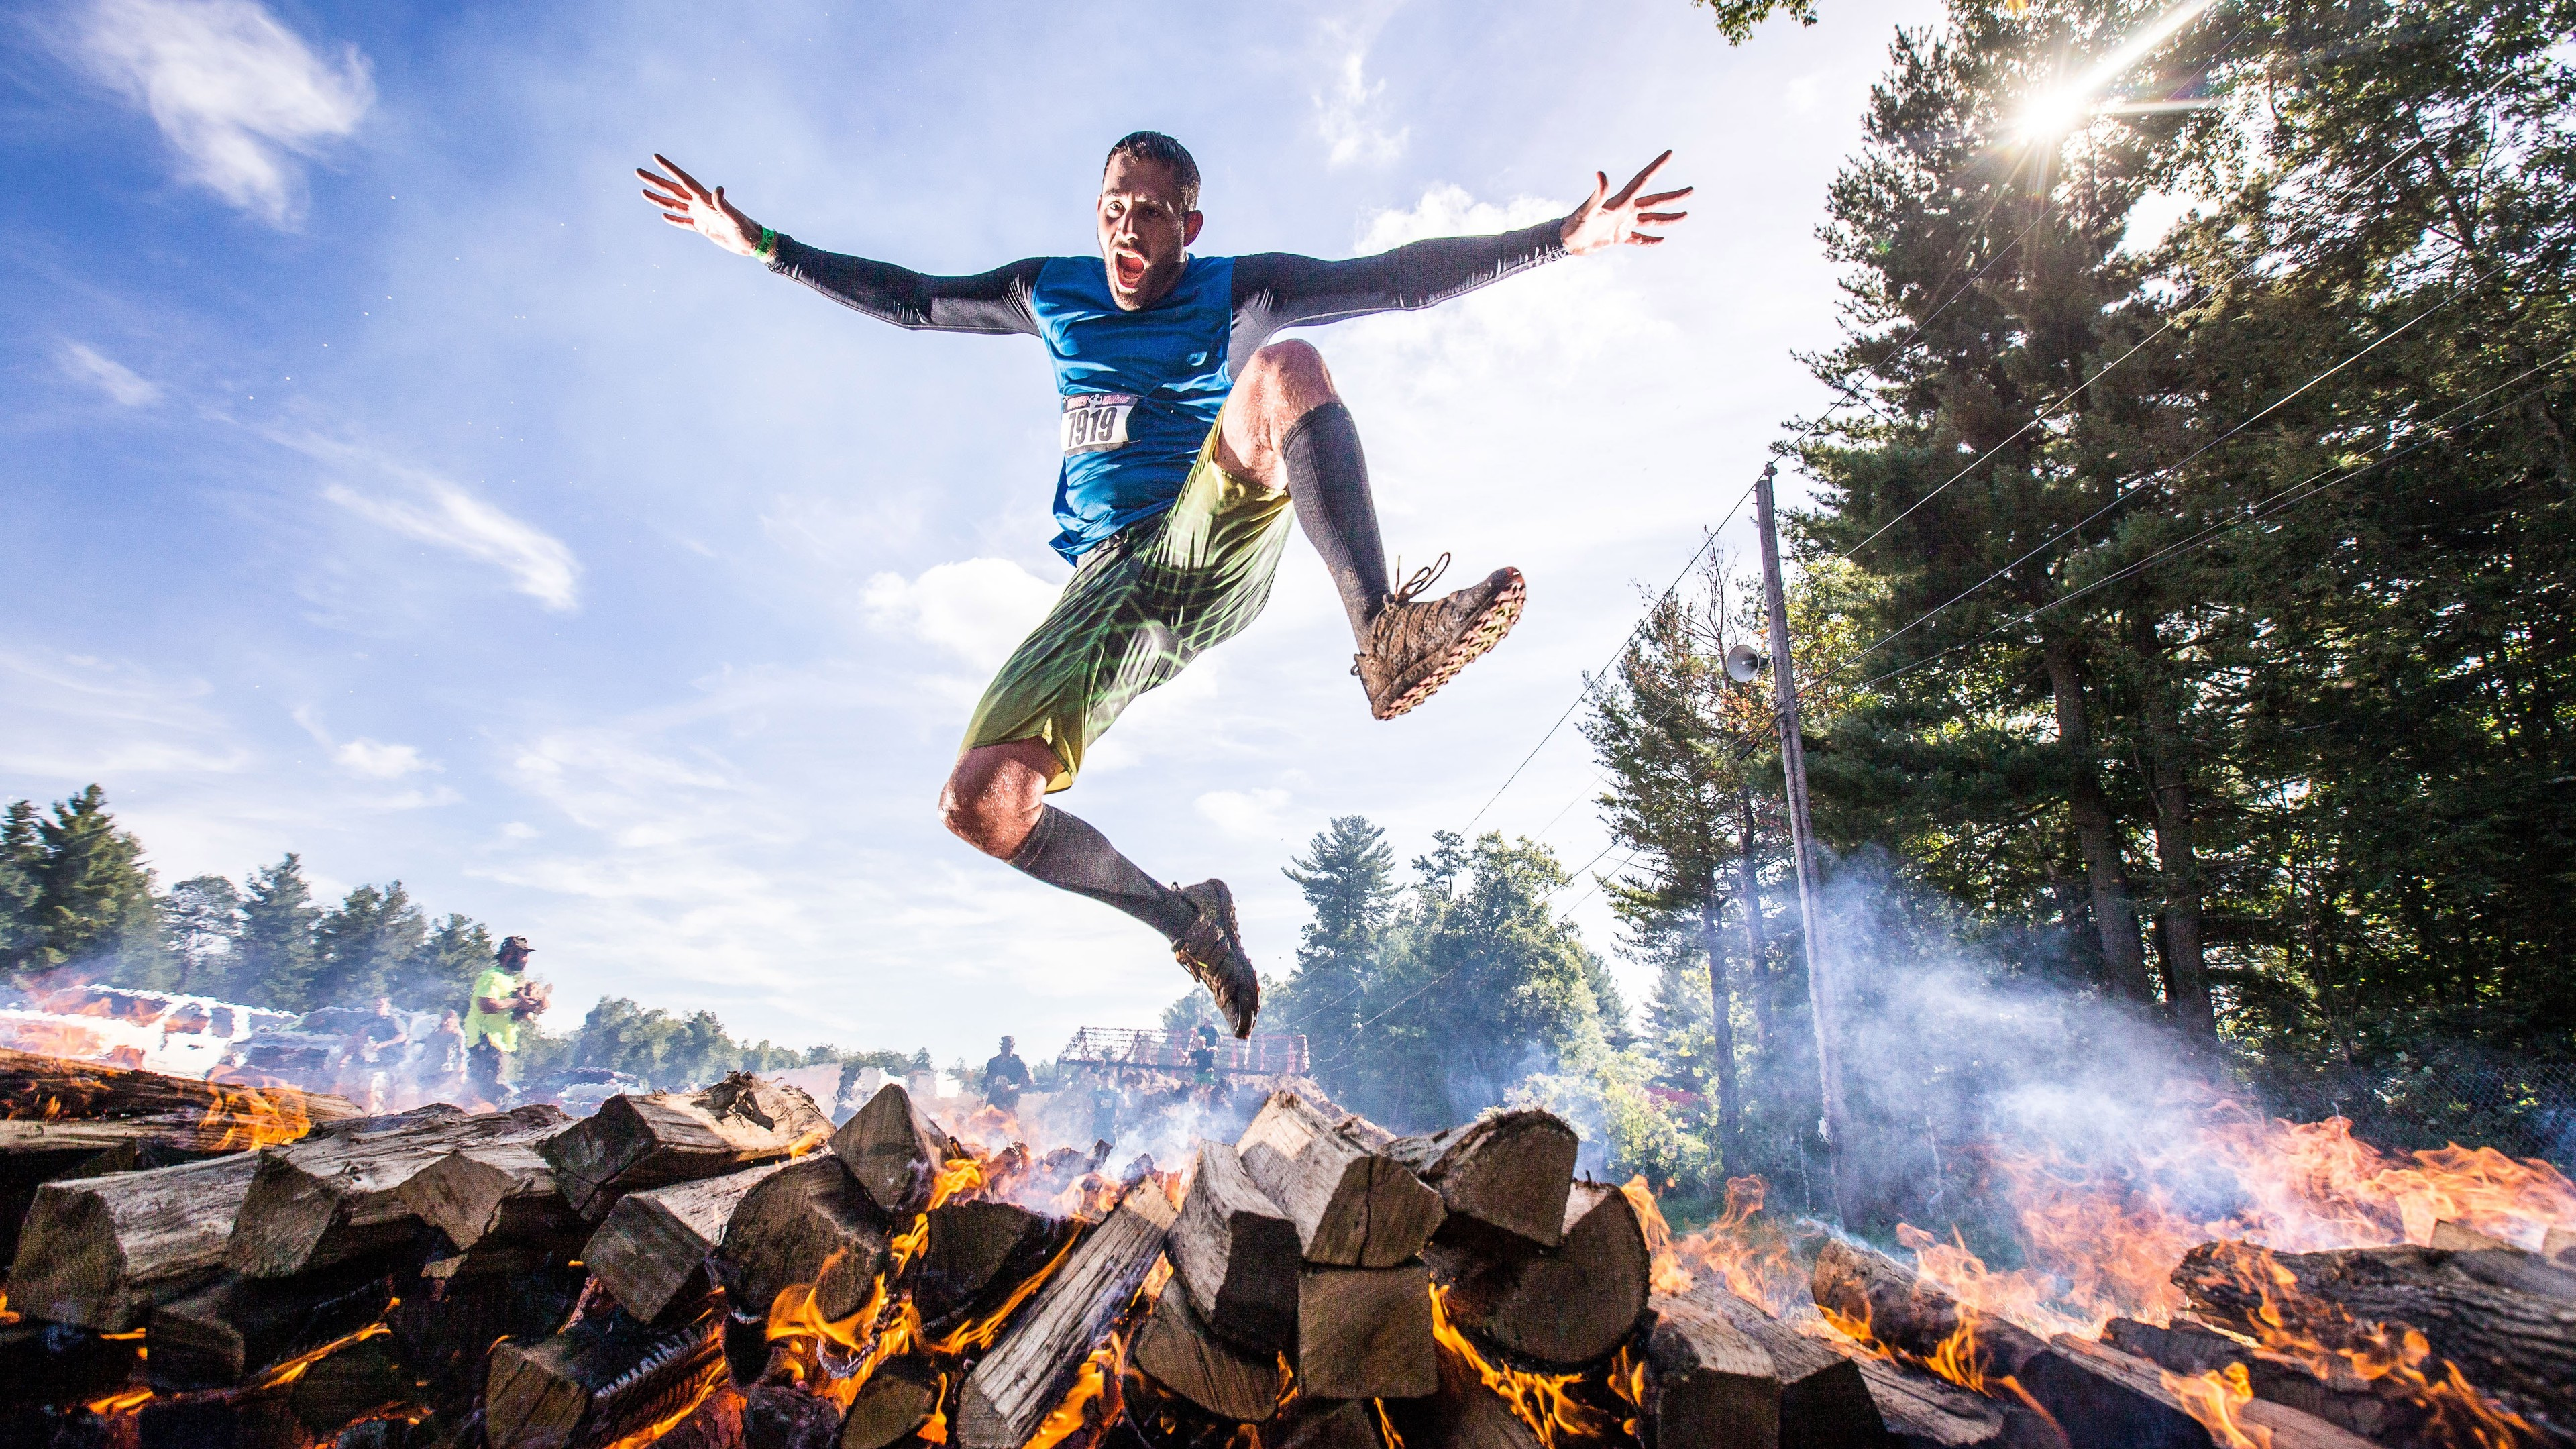 player jumping out of burning woods 1538787003 - Player Jumping Out Of Burning Woods - sports wallpapers, running wallpapers, others wallpapers, jump wallpapers, hd-wallpapers, 5k wallpapers, 4k-wallpapers